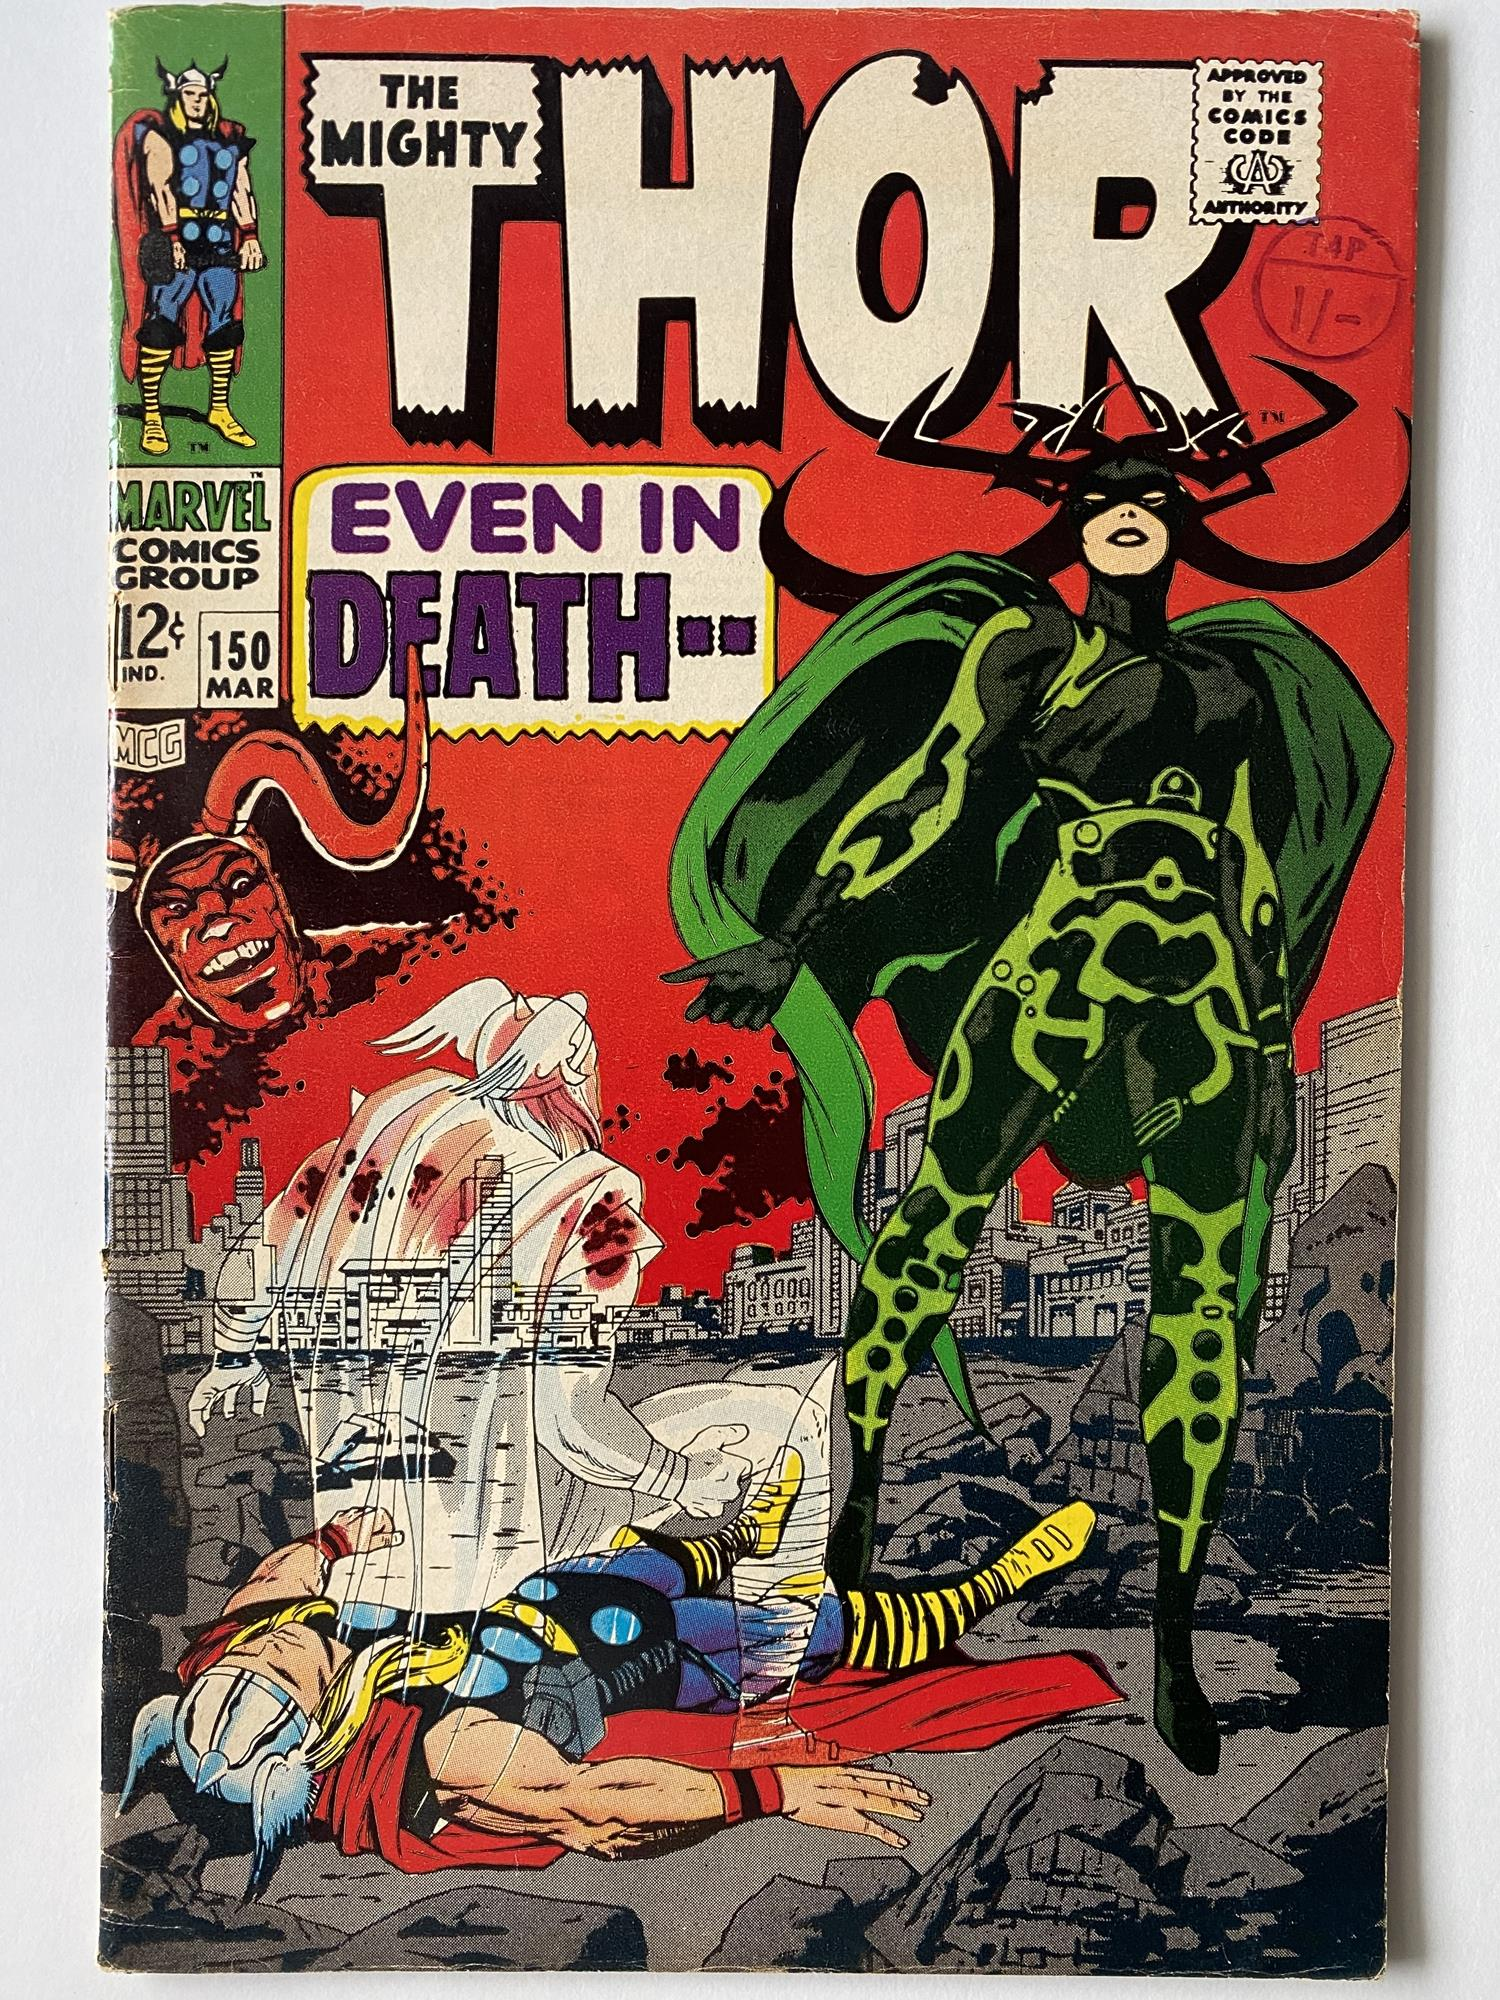 Lot 13 - THOR # 150 (1968 - MARVEL - Cents Copy with Pence Stamp) - Classic 'Hela' cover with Wrecker,